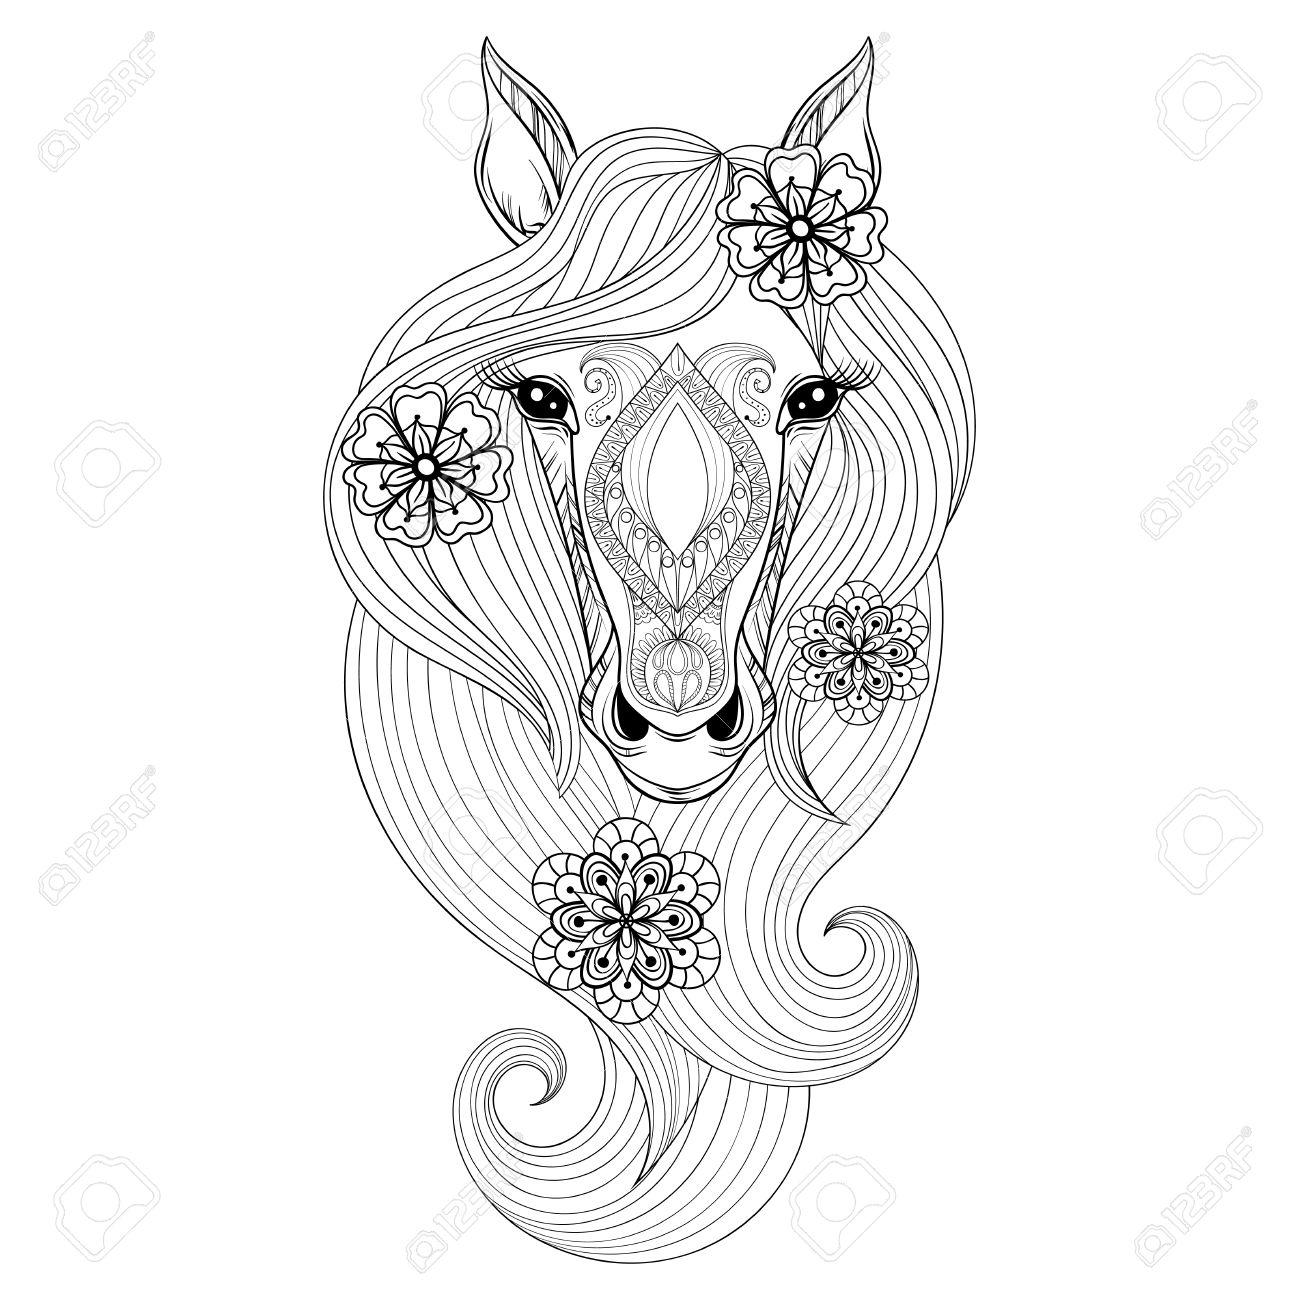 Vector Horse Coloring Page With Face Hand Drawn Patterned